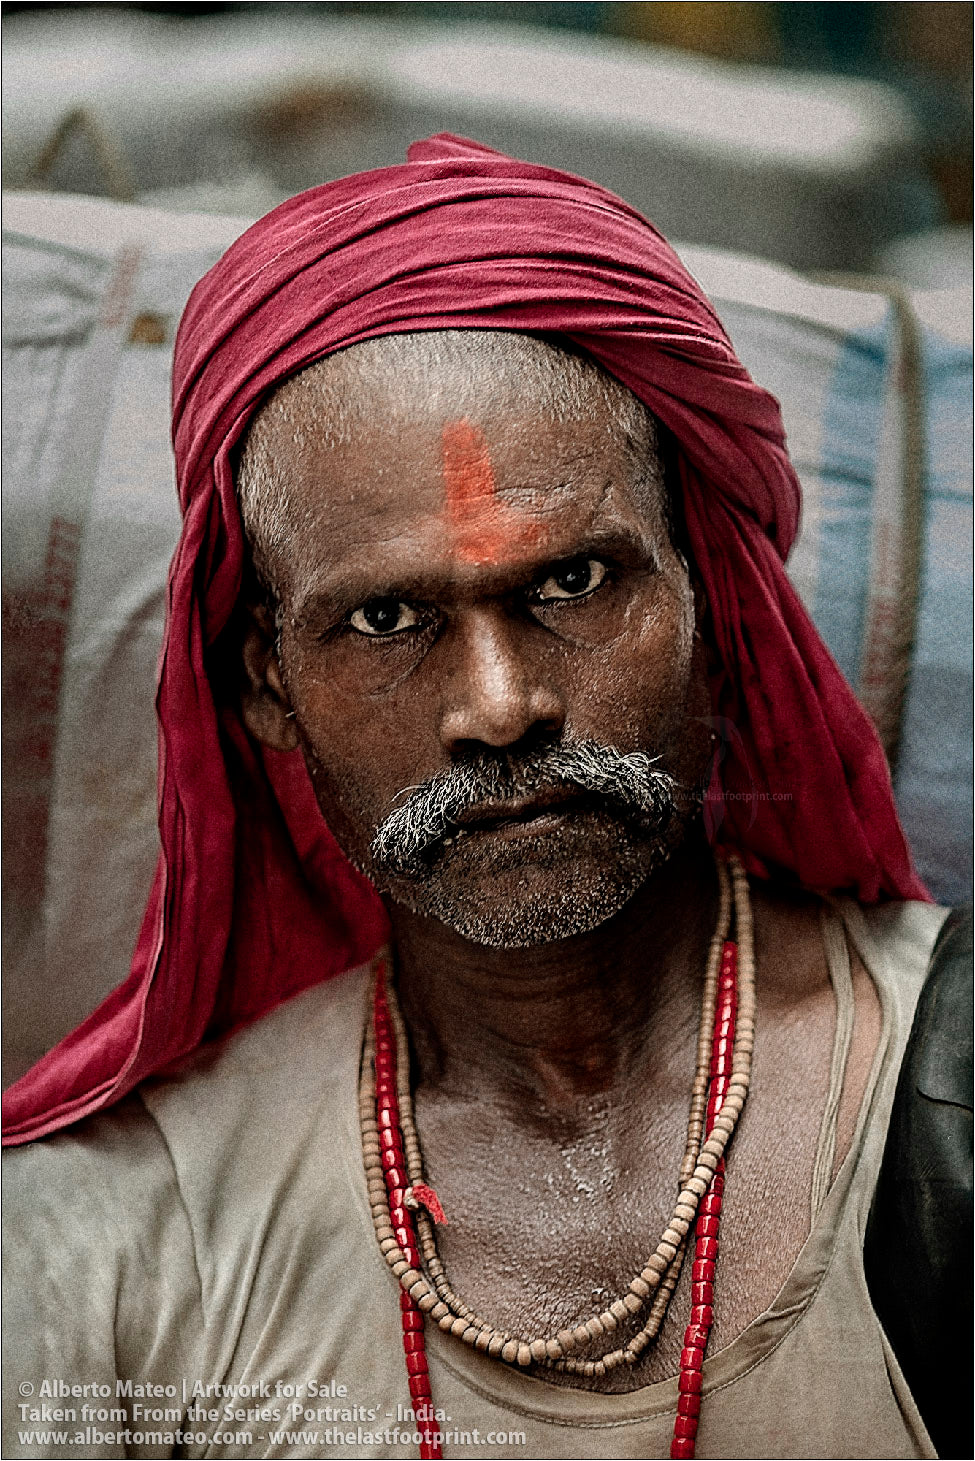 Portrait of Hindu Porter, Bara Bazar, Kolkata, India. [COLOR]